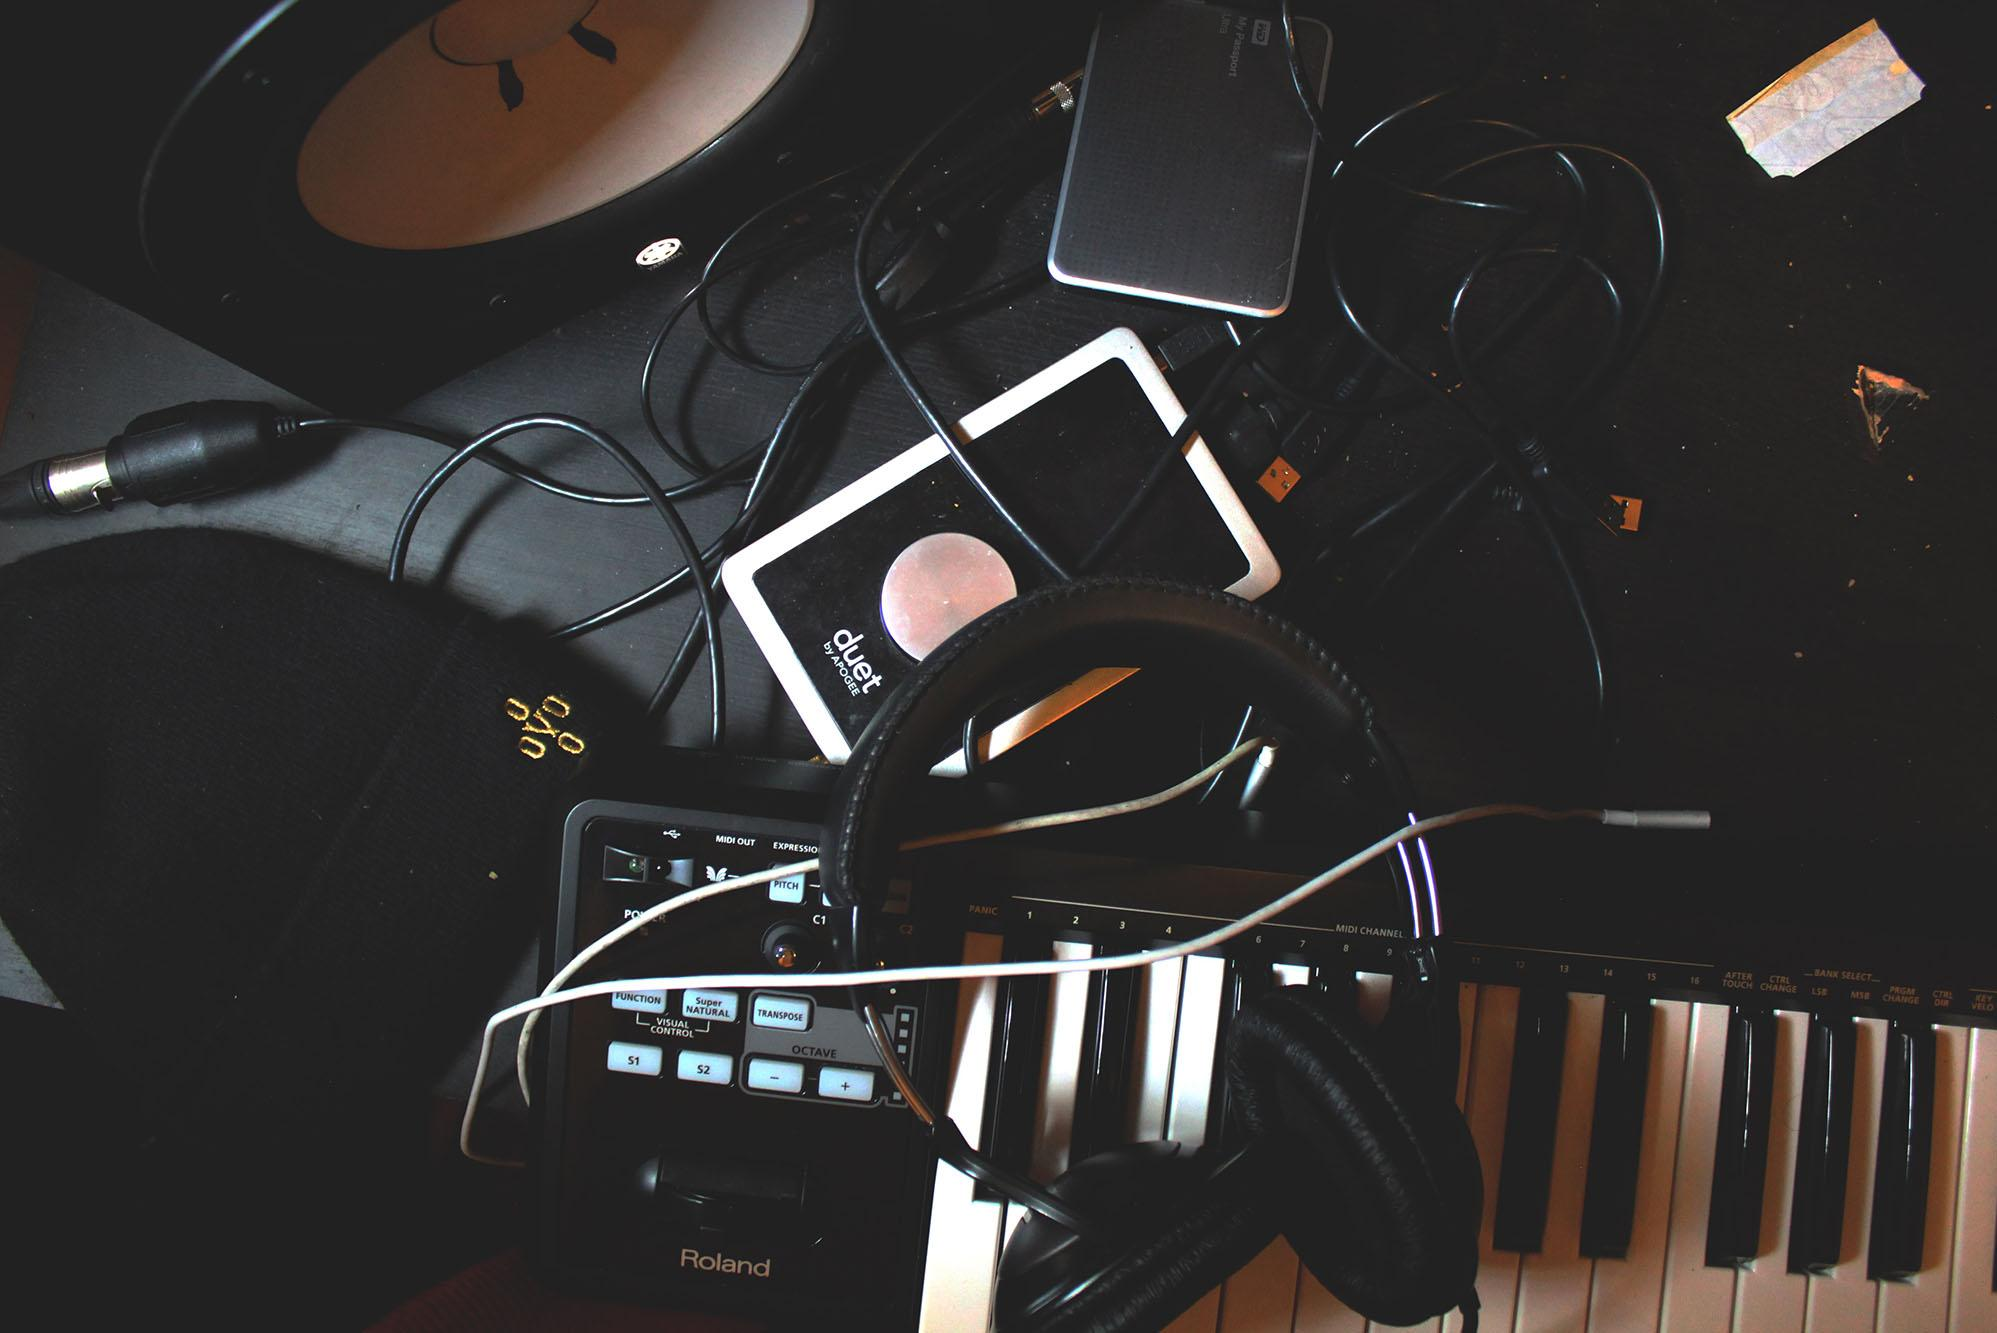 keyboard and headphones and recording equipment